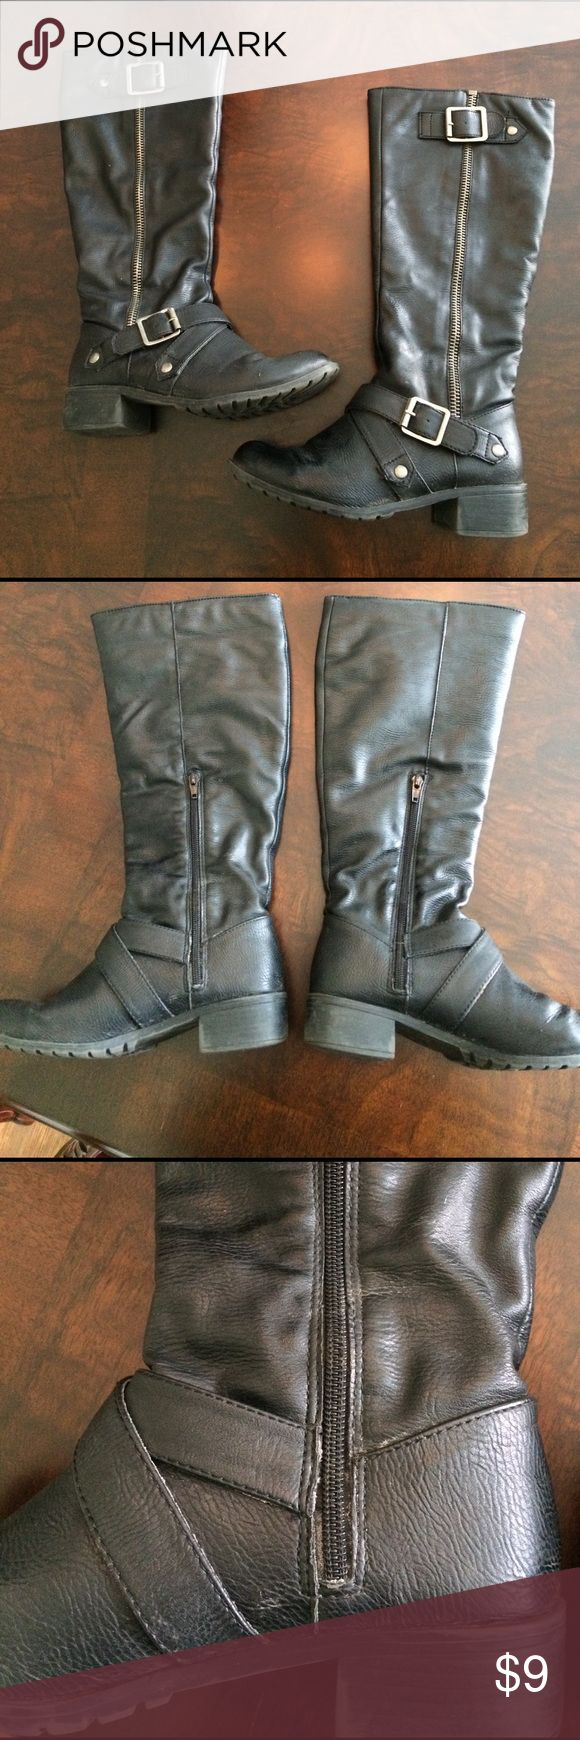 Black biker boots, 6.5 Black tall biker boots from Kohls. Show wear. Some marks/dirt, scuffs and little cracking on front of each boot. Man made materials. Size, 6.5. kohls Shoes Heeled Boots